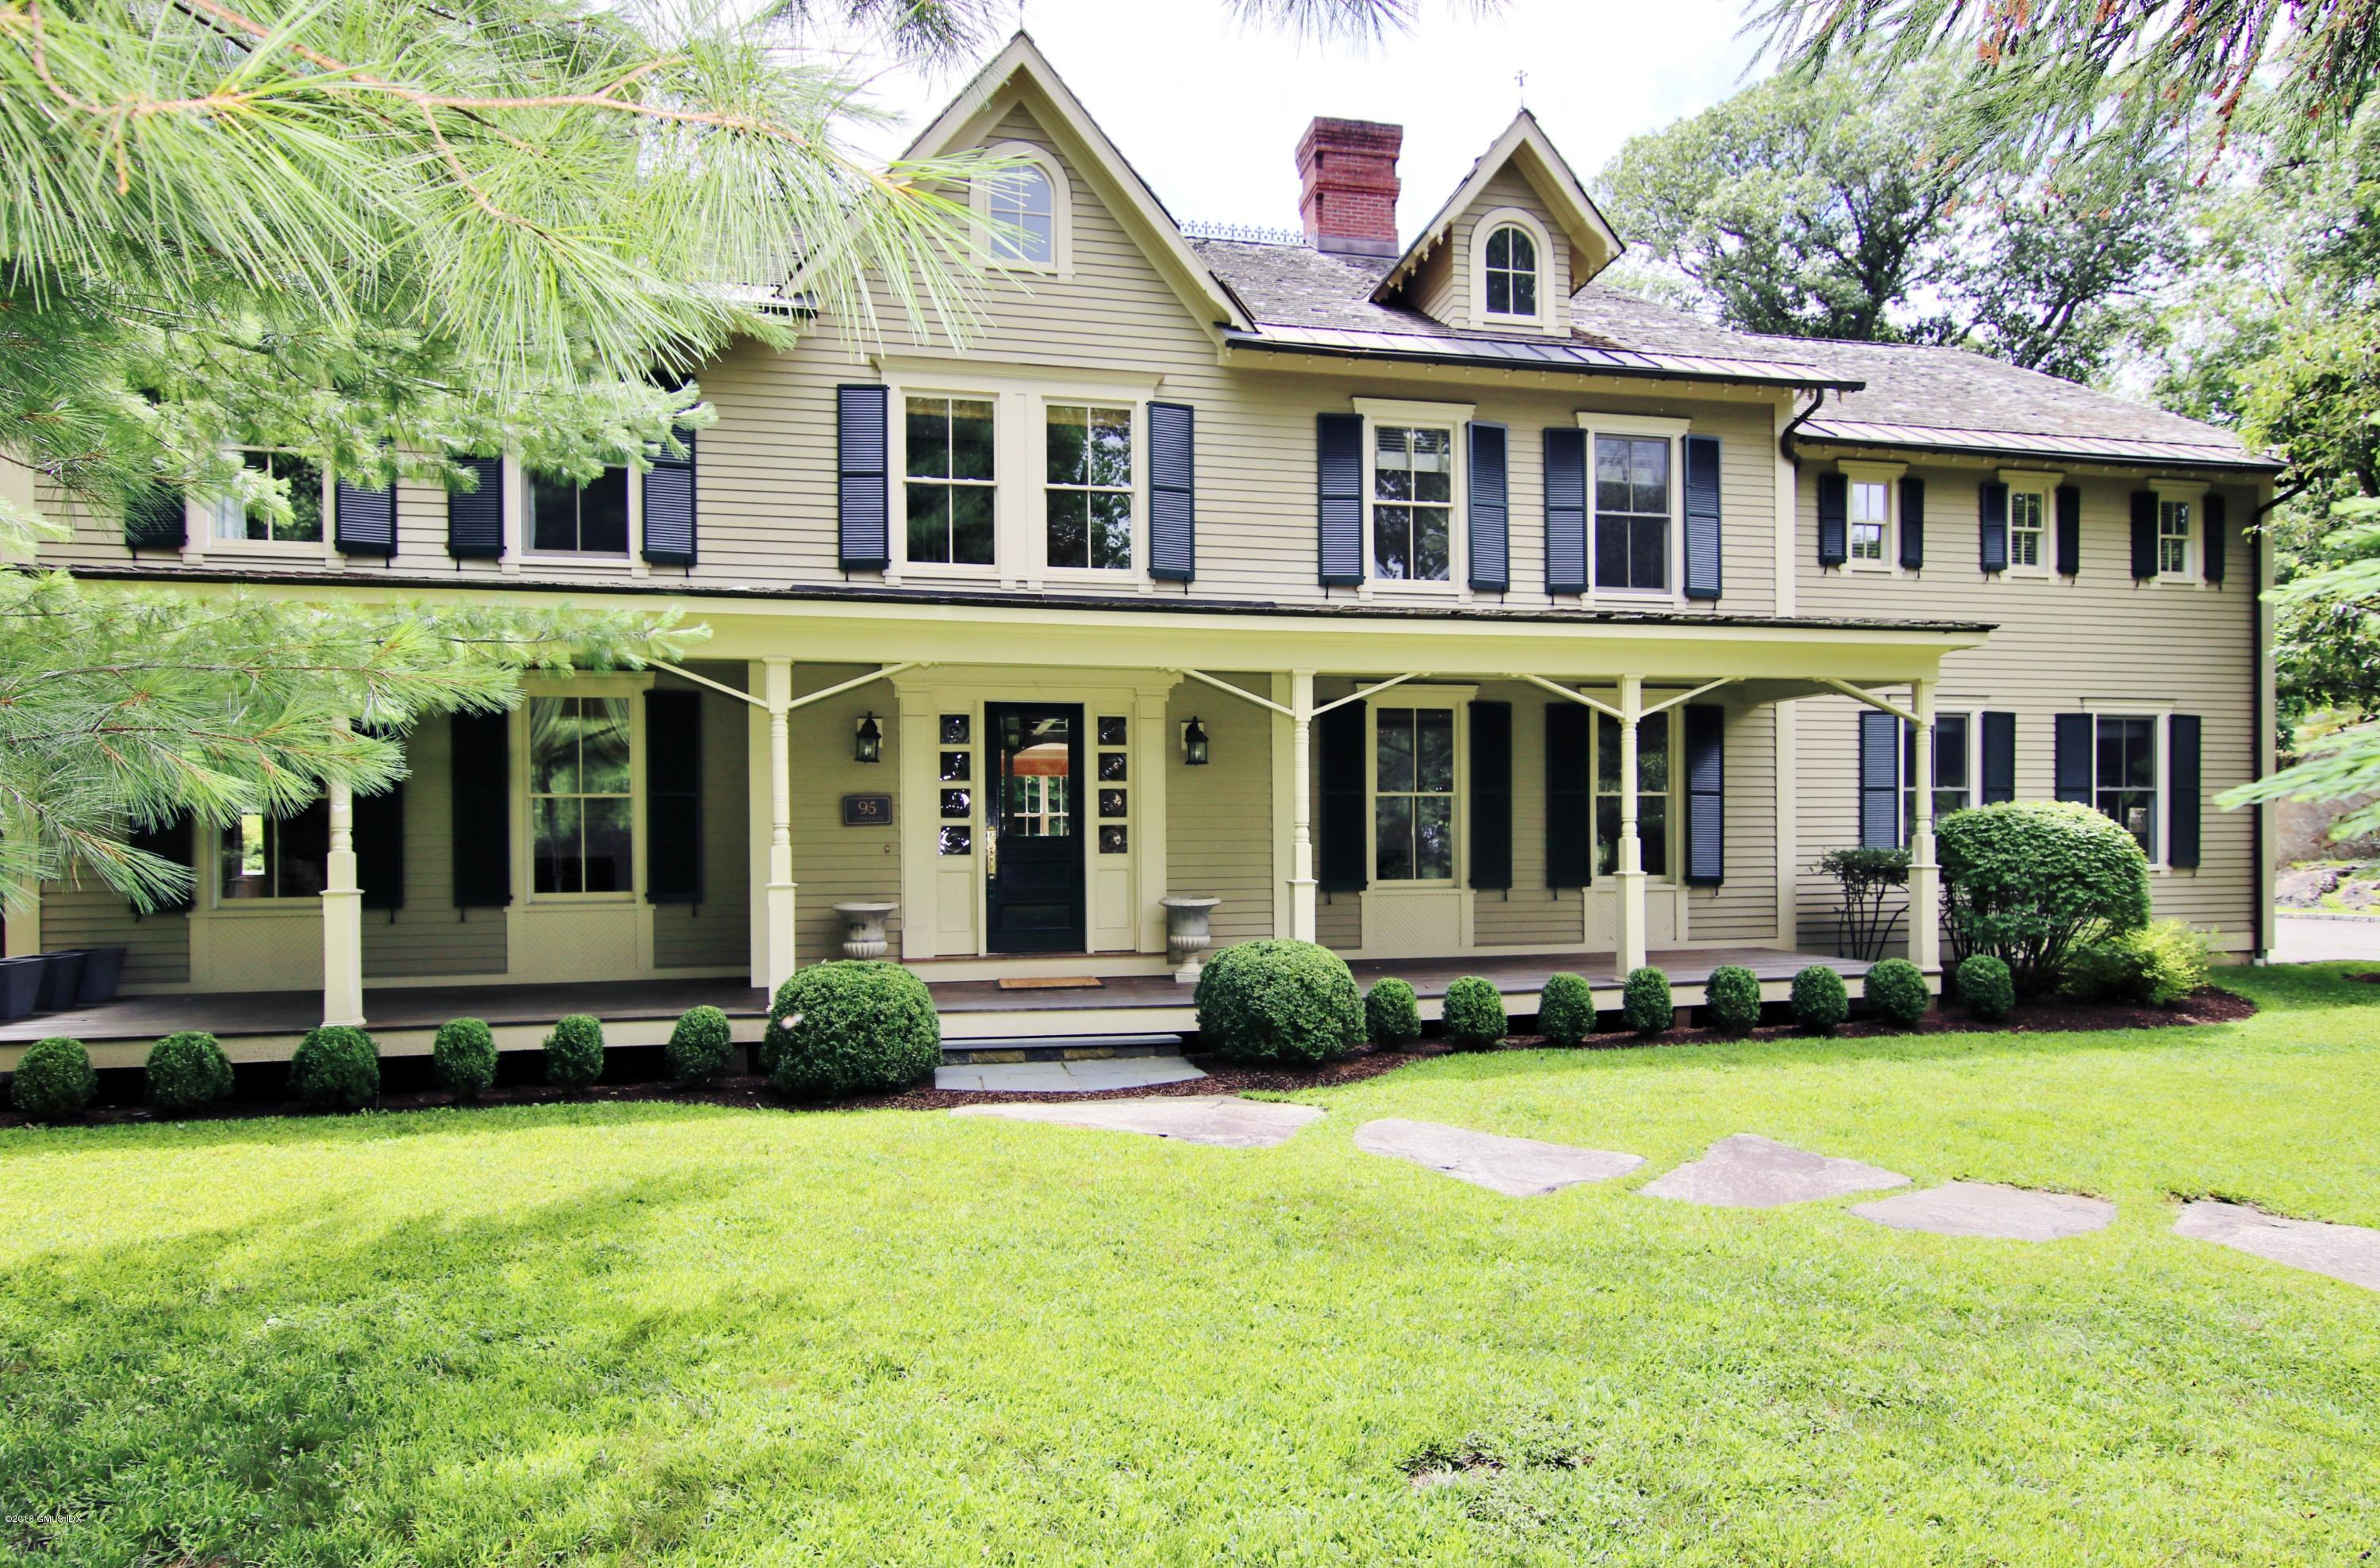 95 Stanwich Road,Greenwich,Connecticut 06830,5 Bedrooms Bedrooms,4 BathroomsBathrooms,Single family,Stanwich,103899